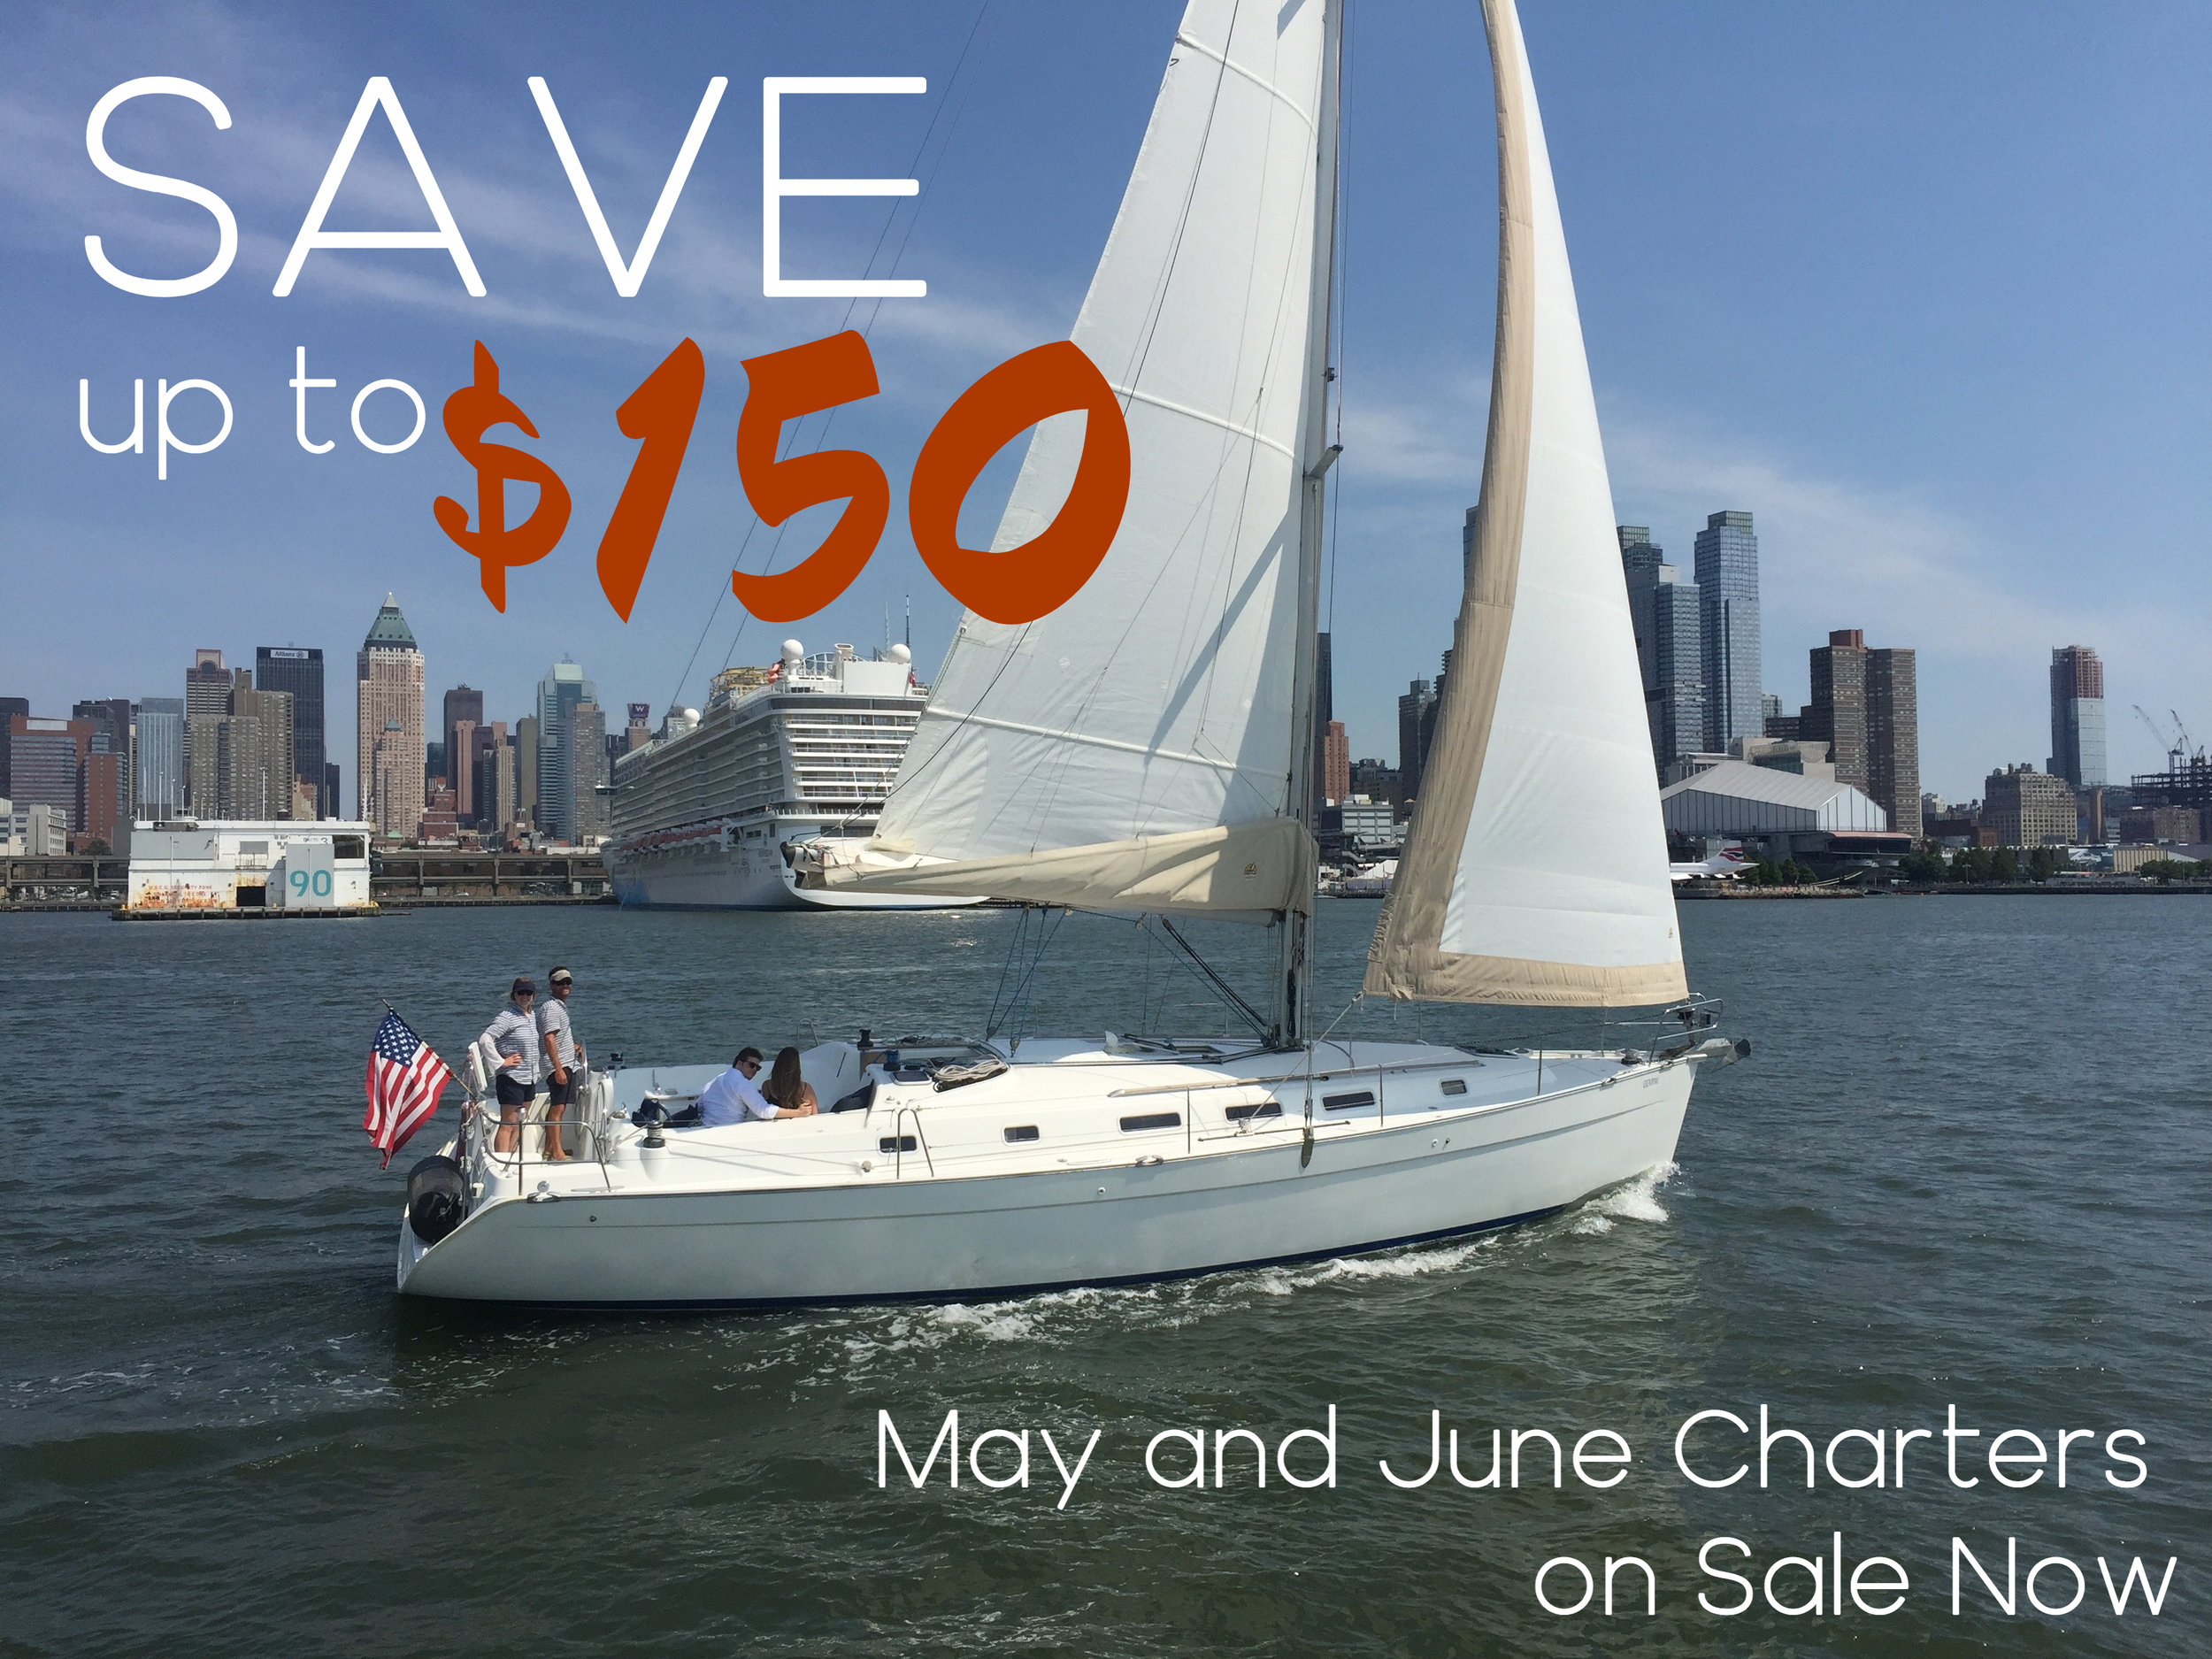 NYC Yacht Charter Deals Full.jpg